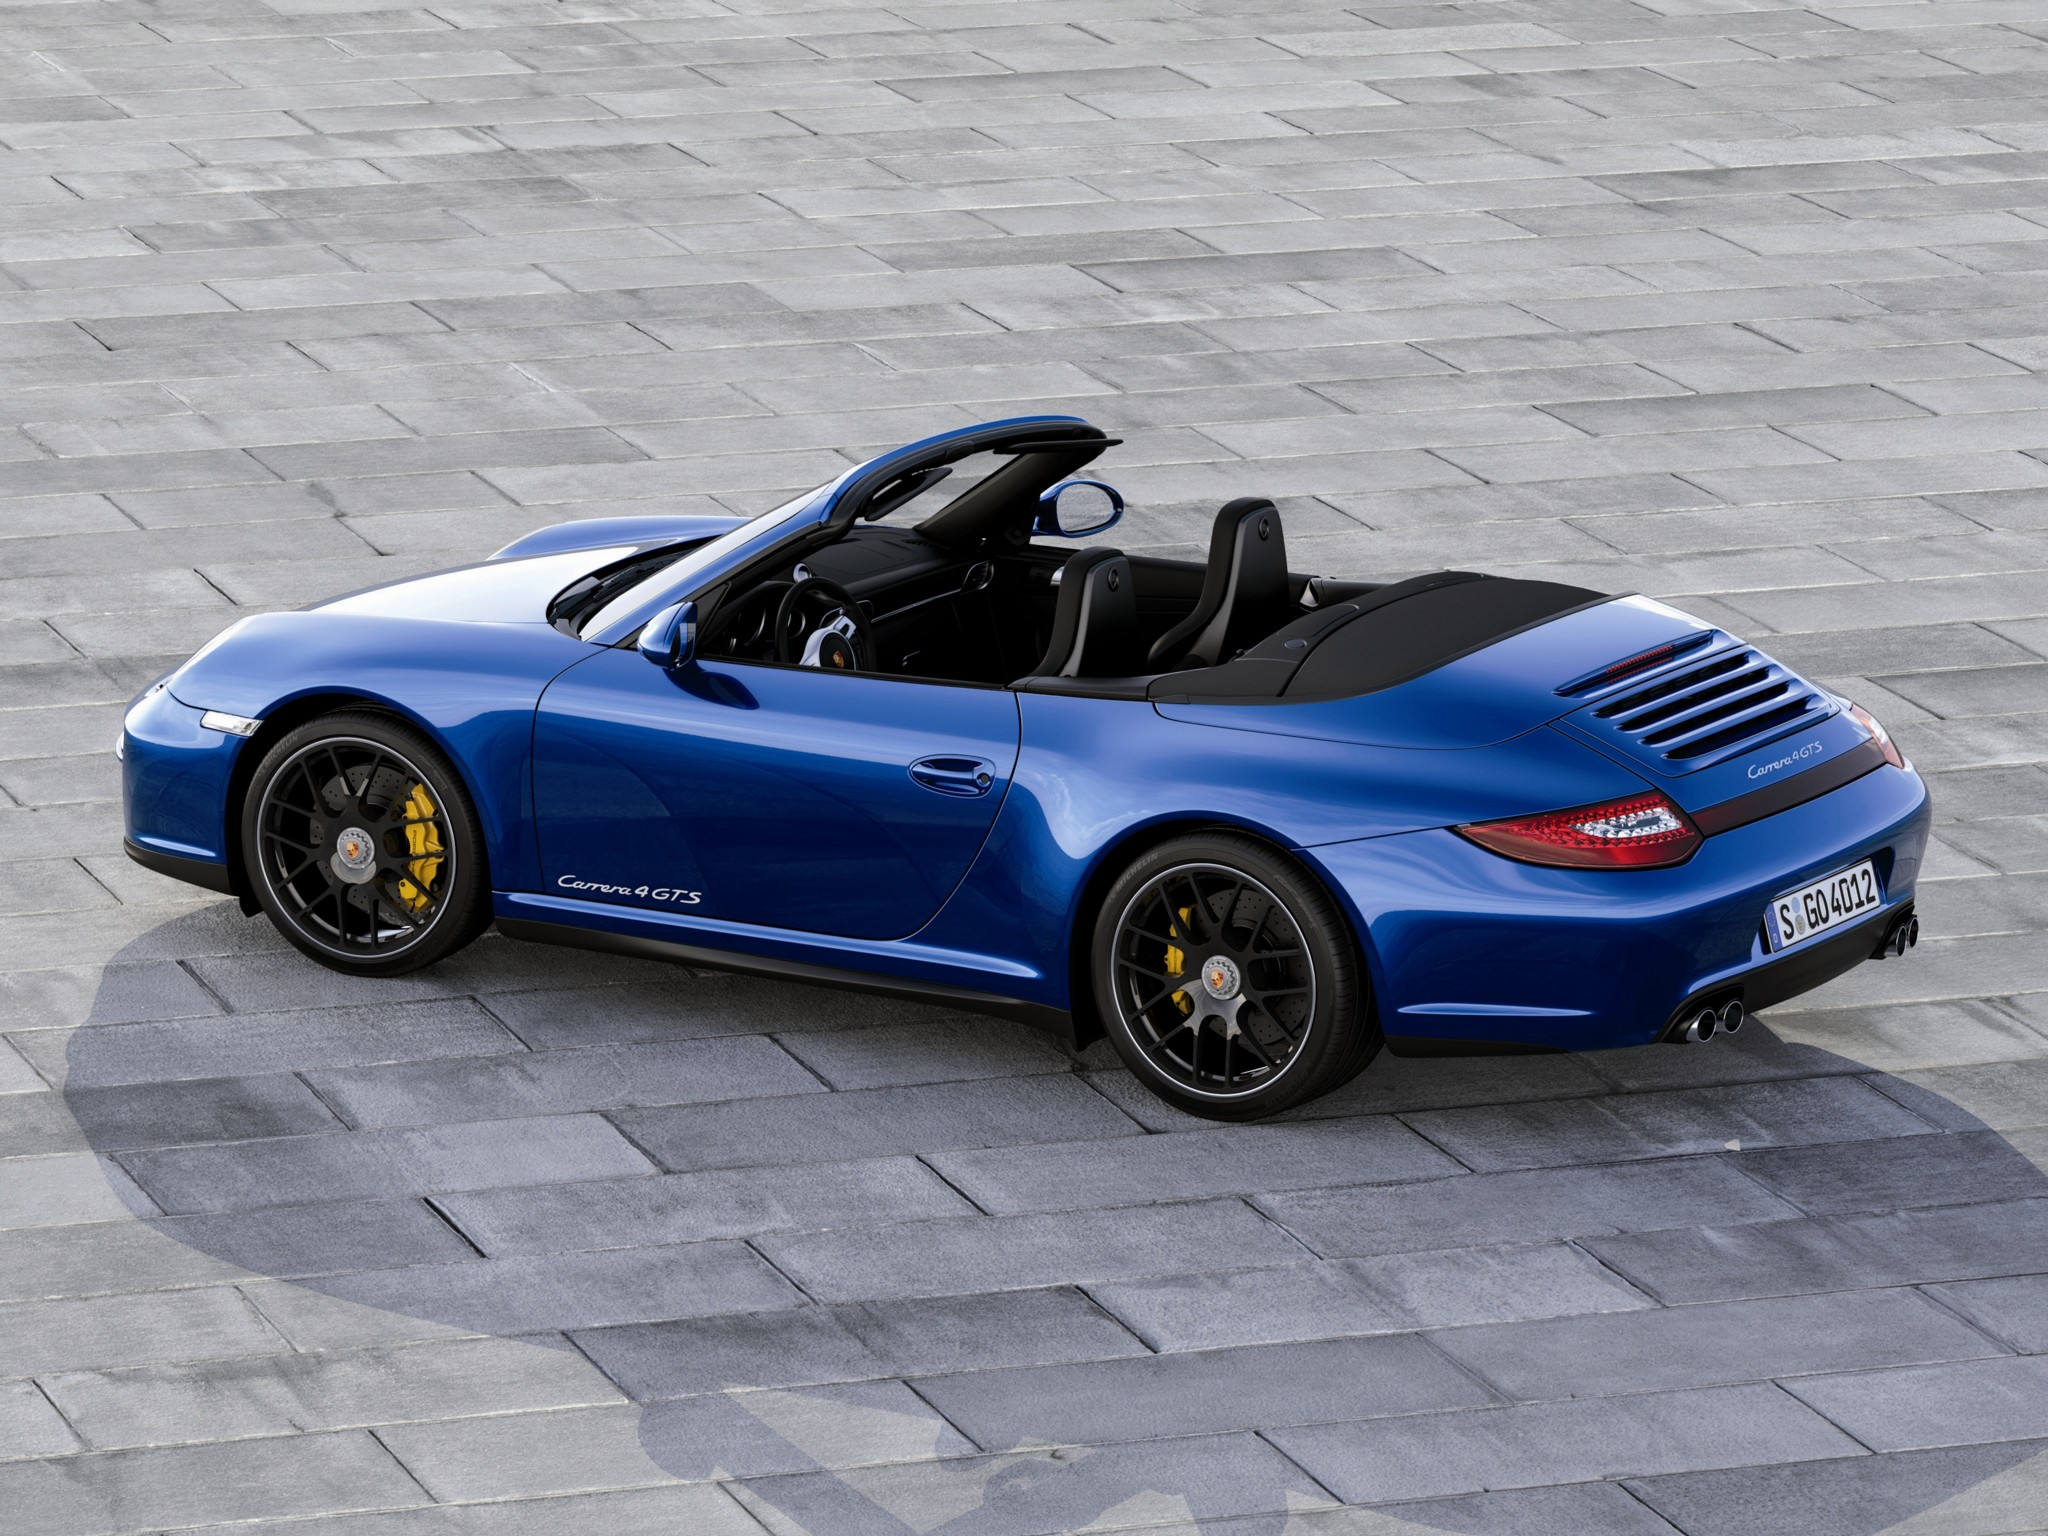 porsche 911 carrera 4 gts cabriolet 997 2011 porsche 911 carrera 4 gts cabriolet 997 2011 photo. Black Bedroom Furniture Sets. Home Design Ideas